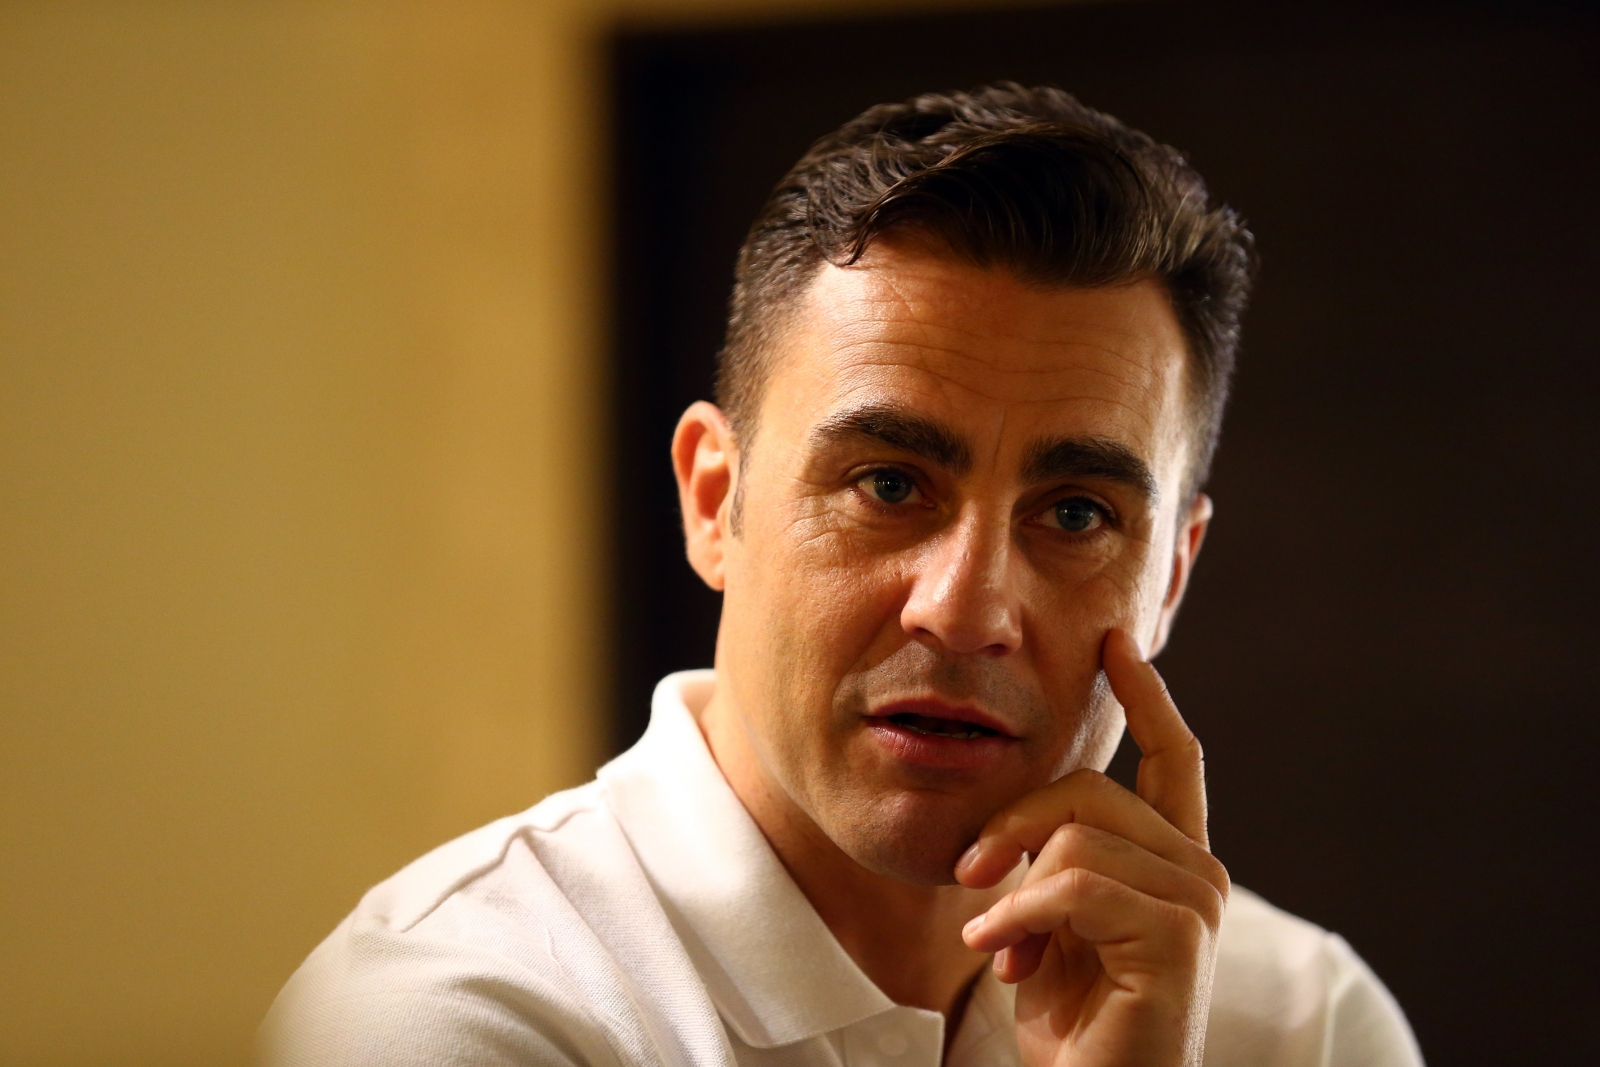 Fabio Cannavaro has been handed a prison sentence in Italy